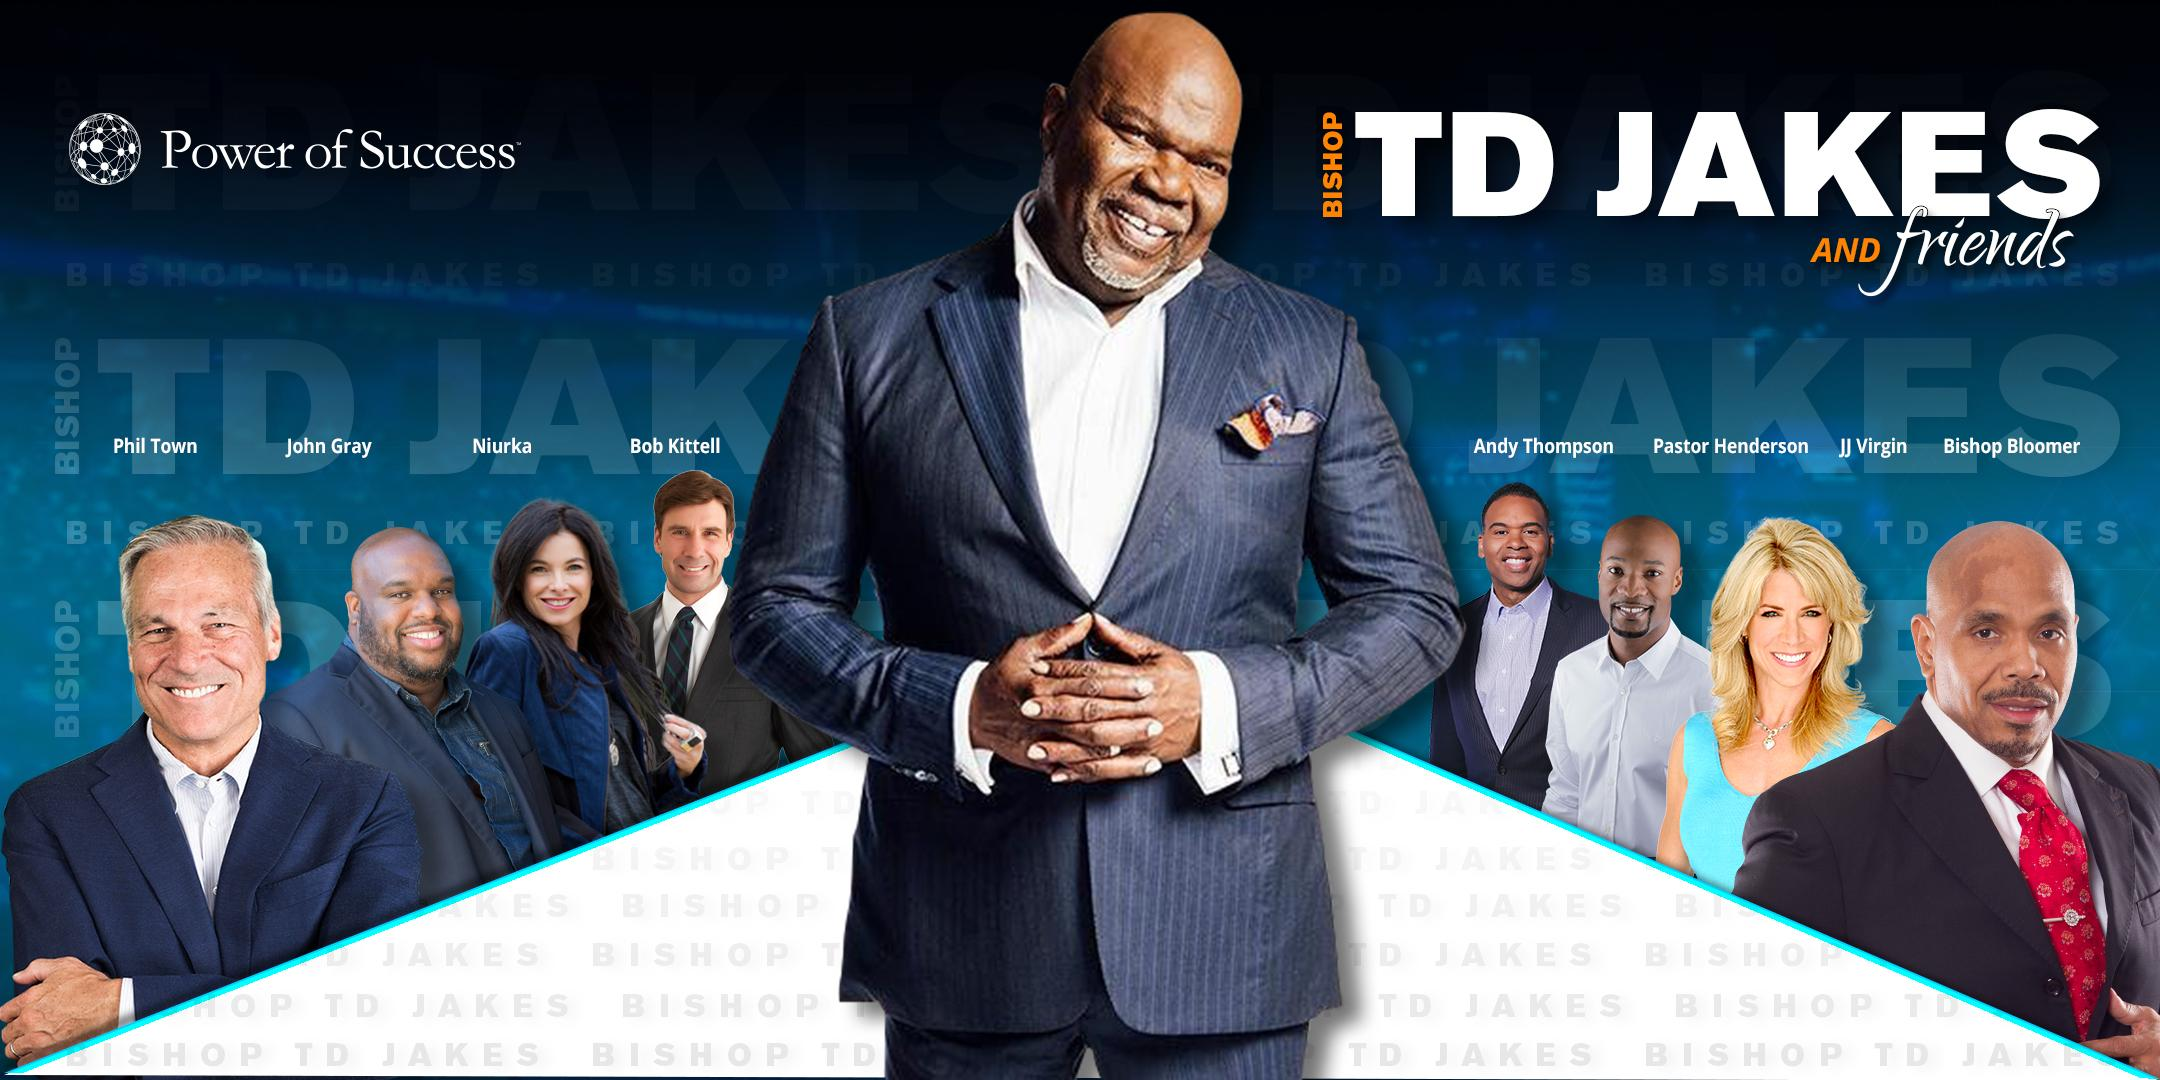 TD Jakes and Friends Toronto 2017